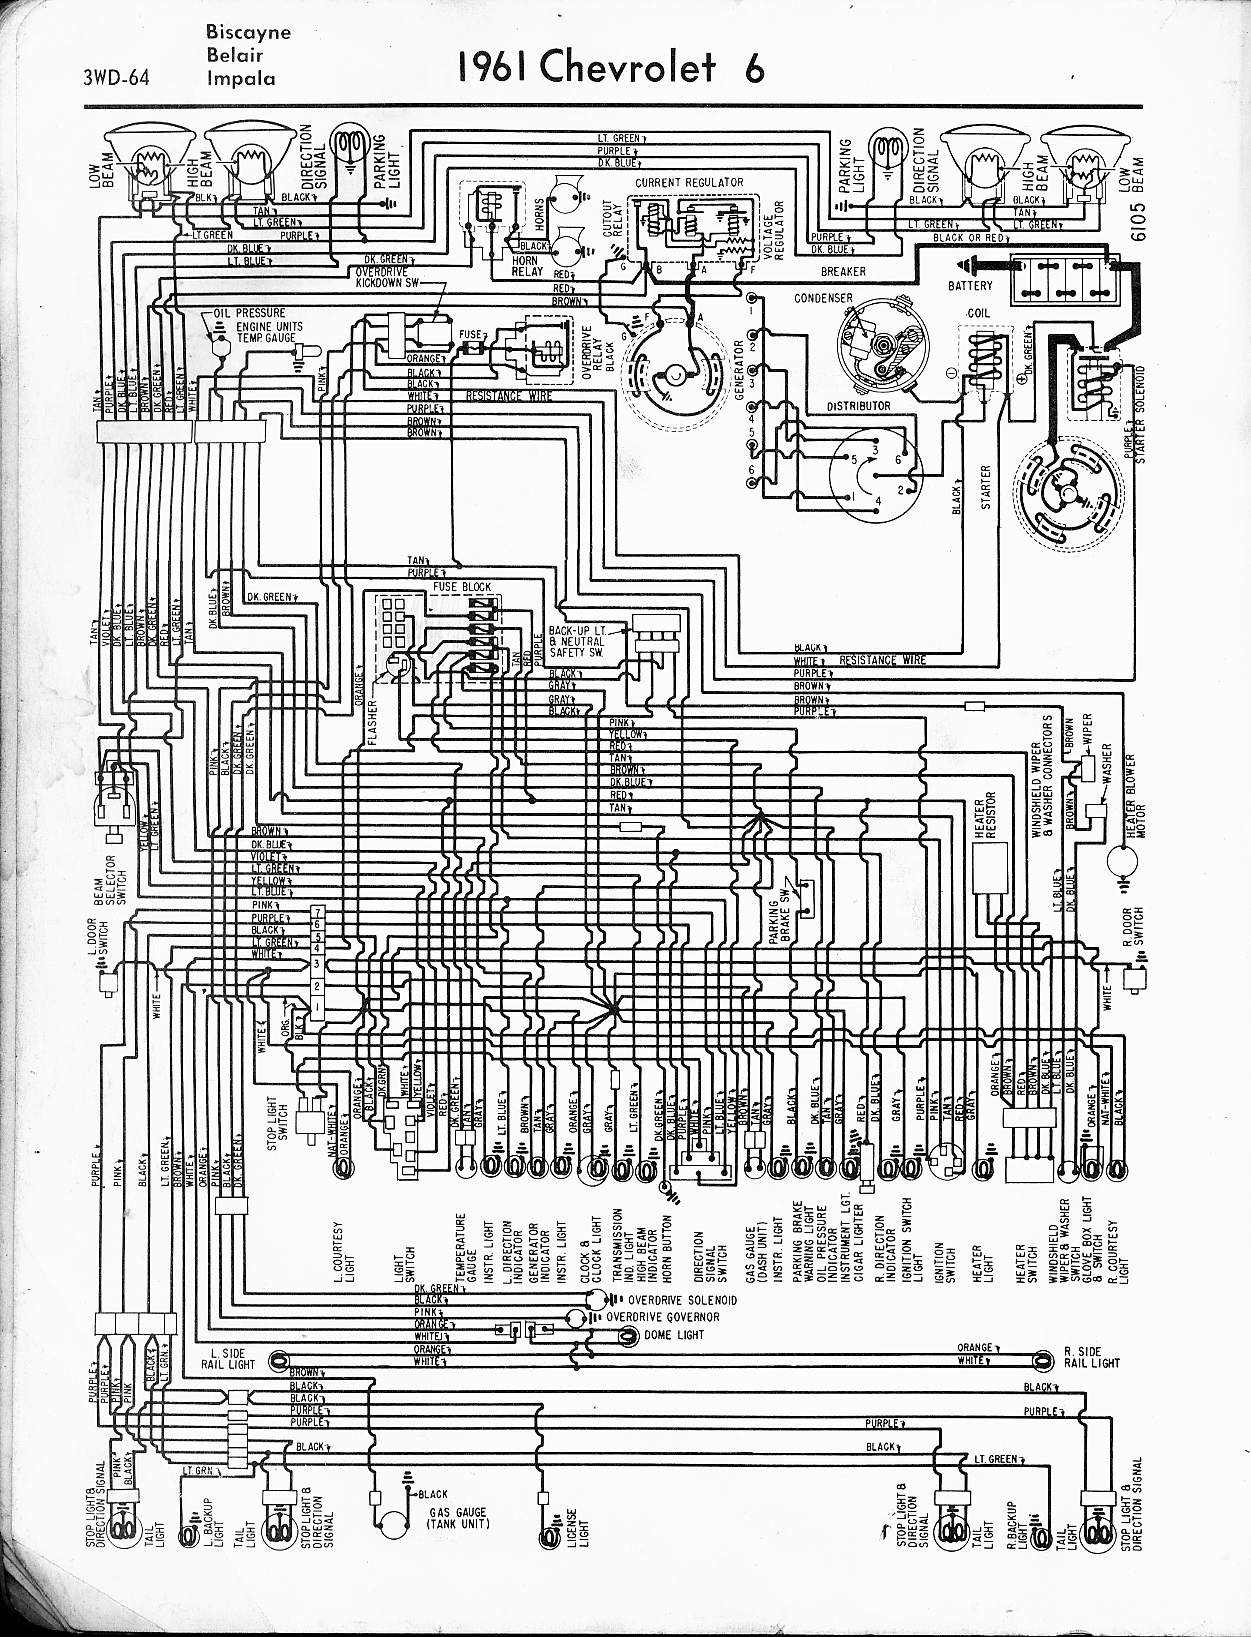 57 65 chevy wiring diagrams 57 chevy headlight wiring diagram 57 chevy wiring diagram 57 chevy overdrive wiring diagram Chevrolet Wiring Diagram 57 Chevy EZ Wiring Diagram